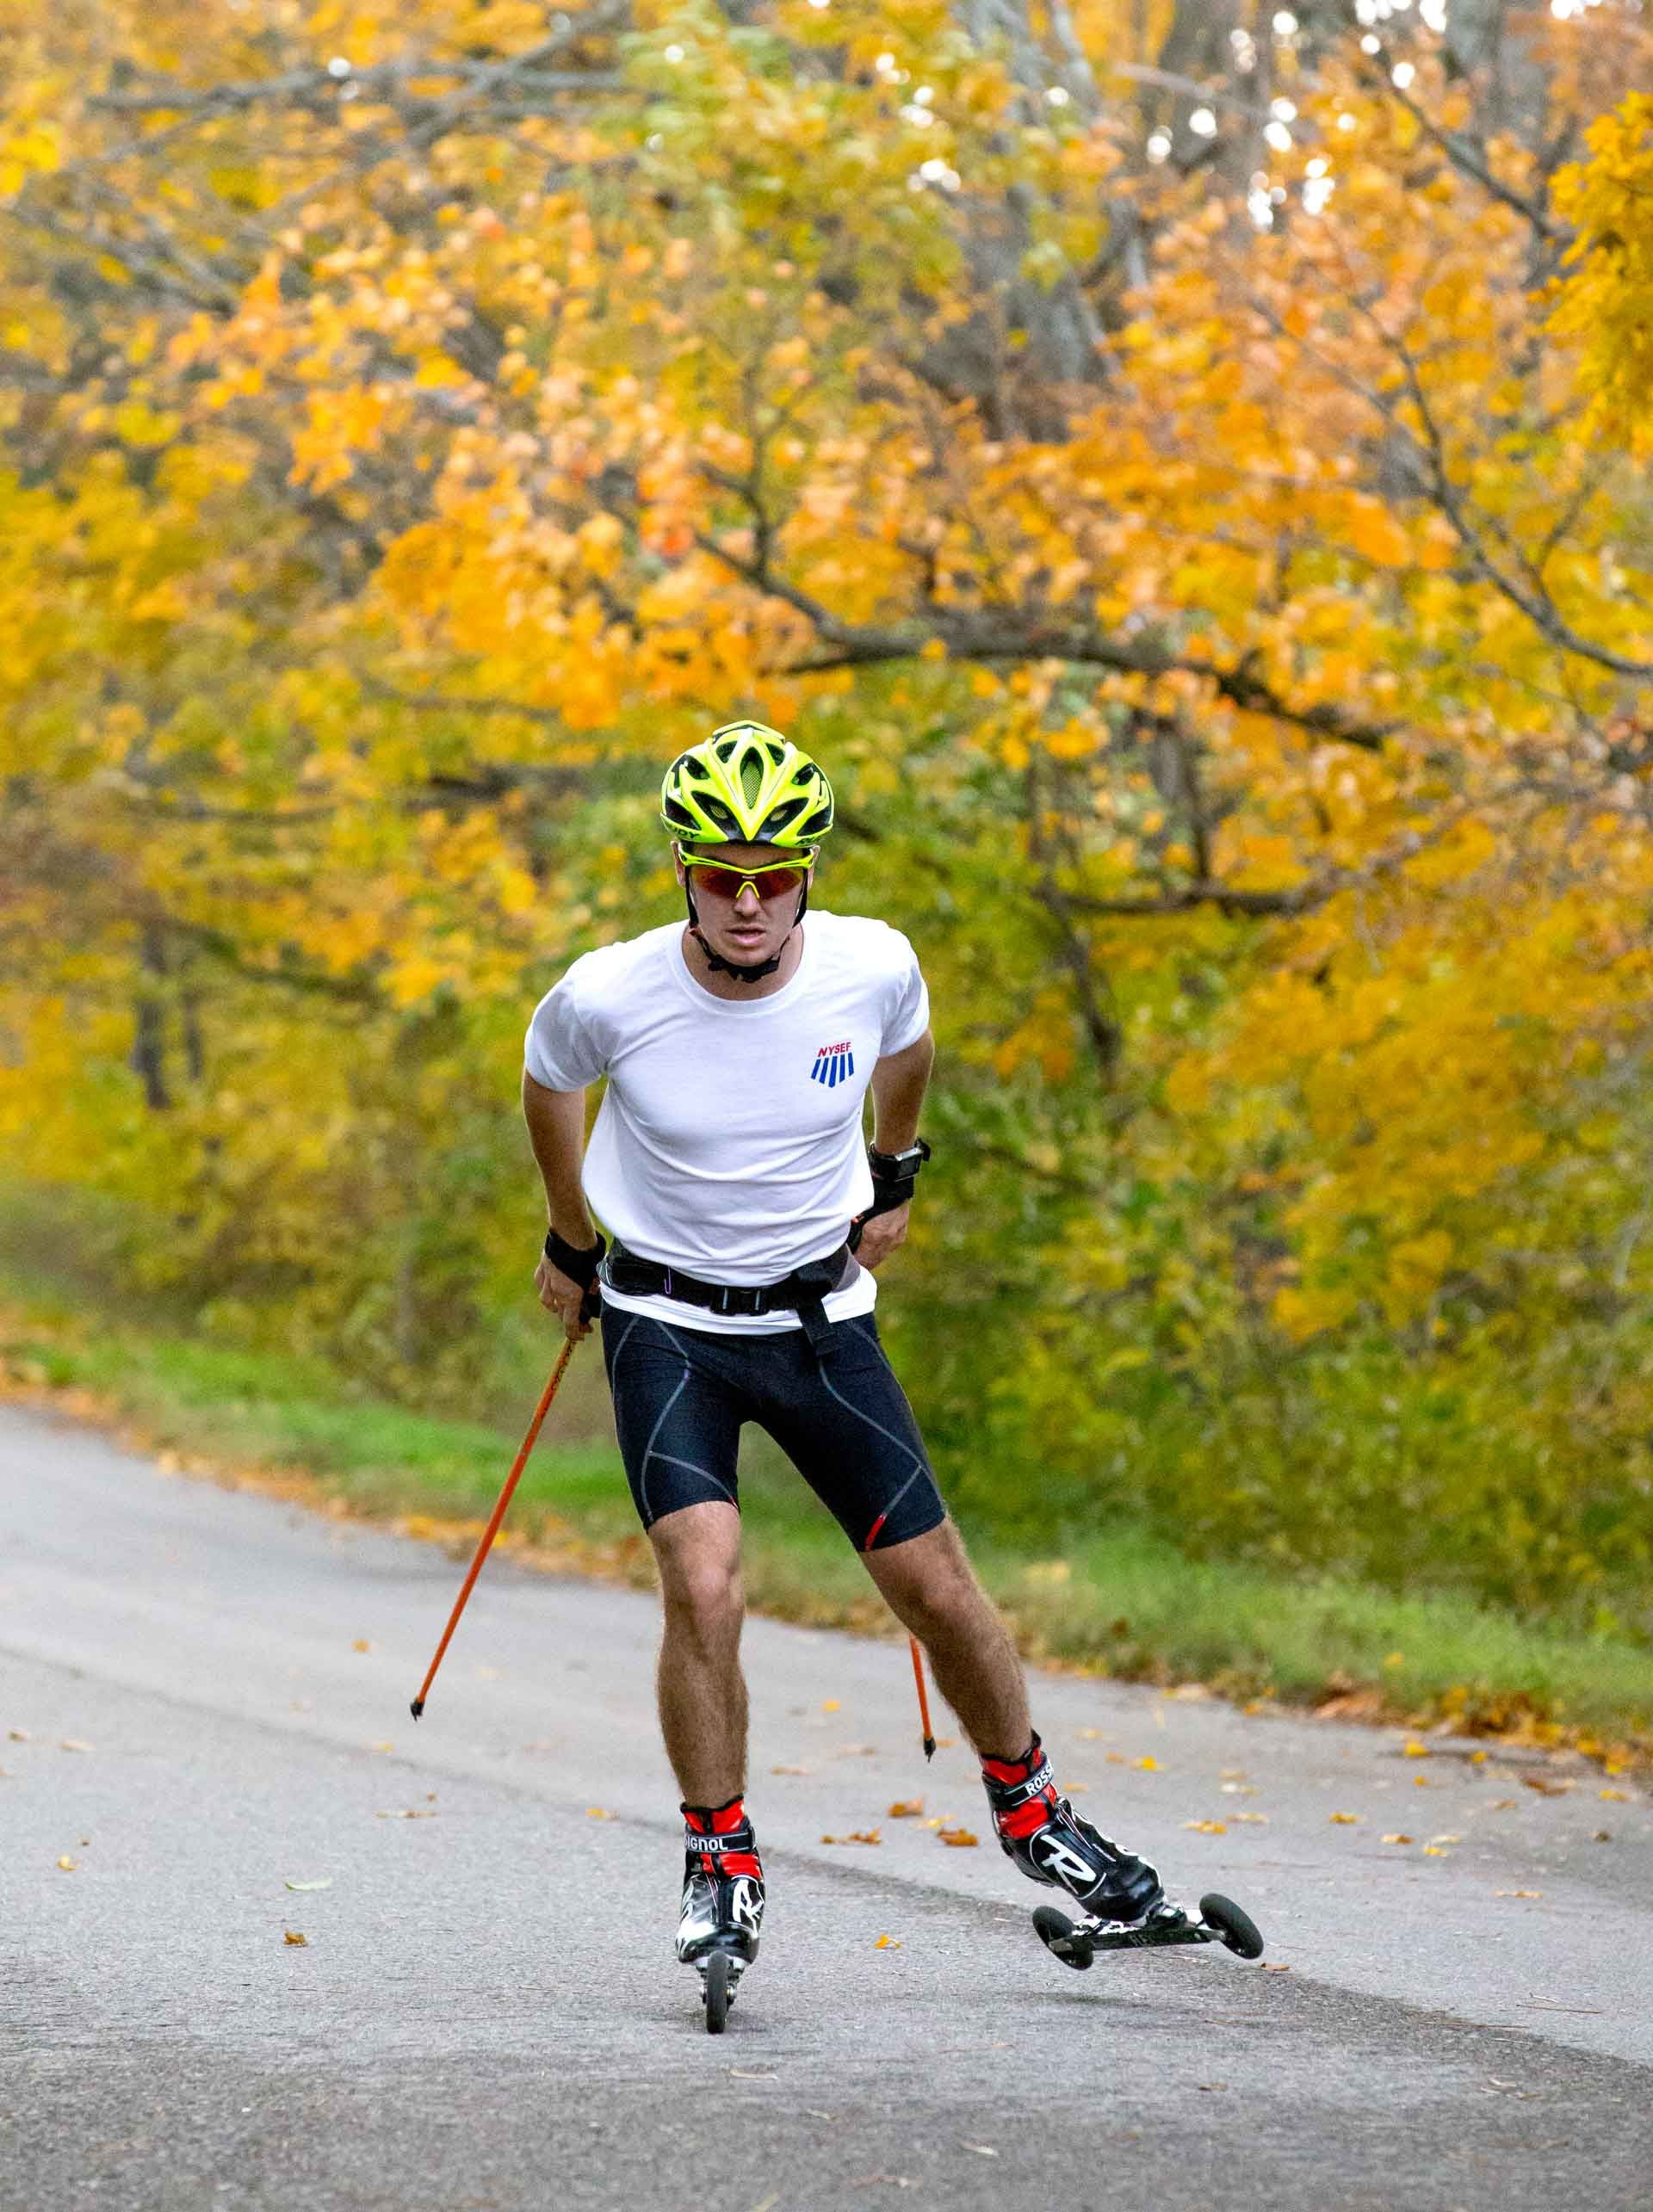 Kieran Jones Roller Skiing in October